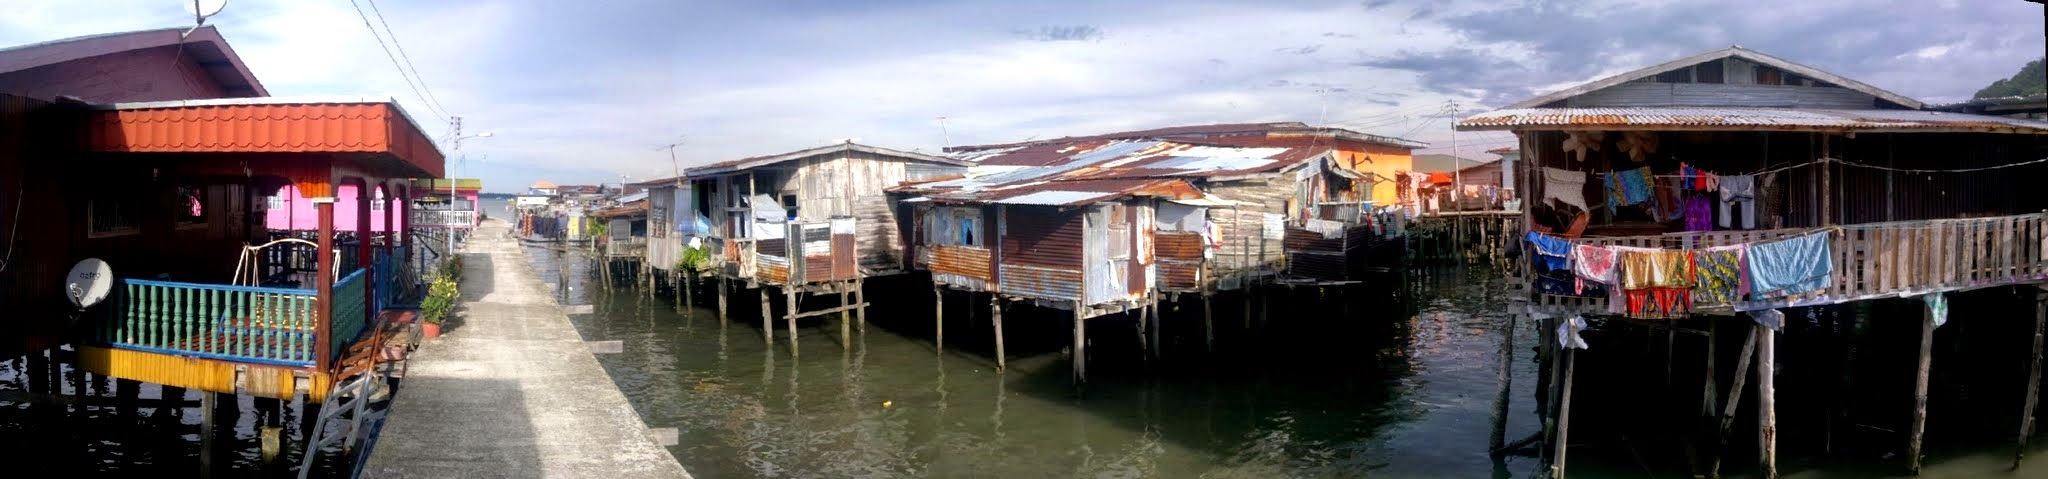 Sim Sim City of Sea Gypsies near Sandakan, Borneo